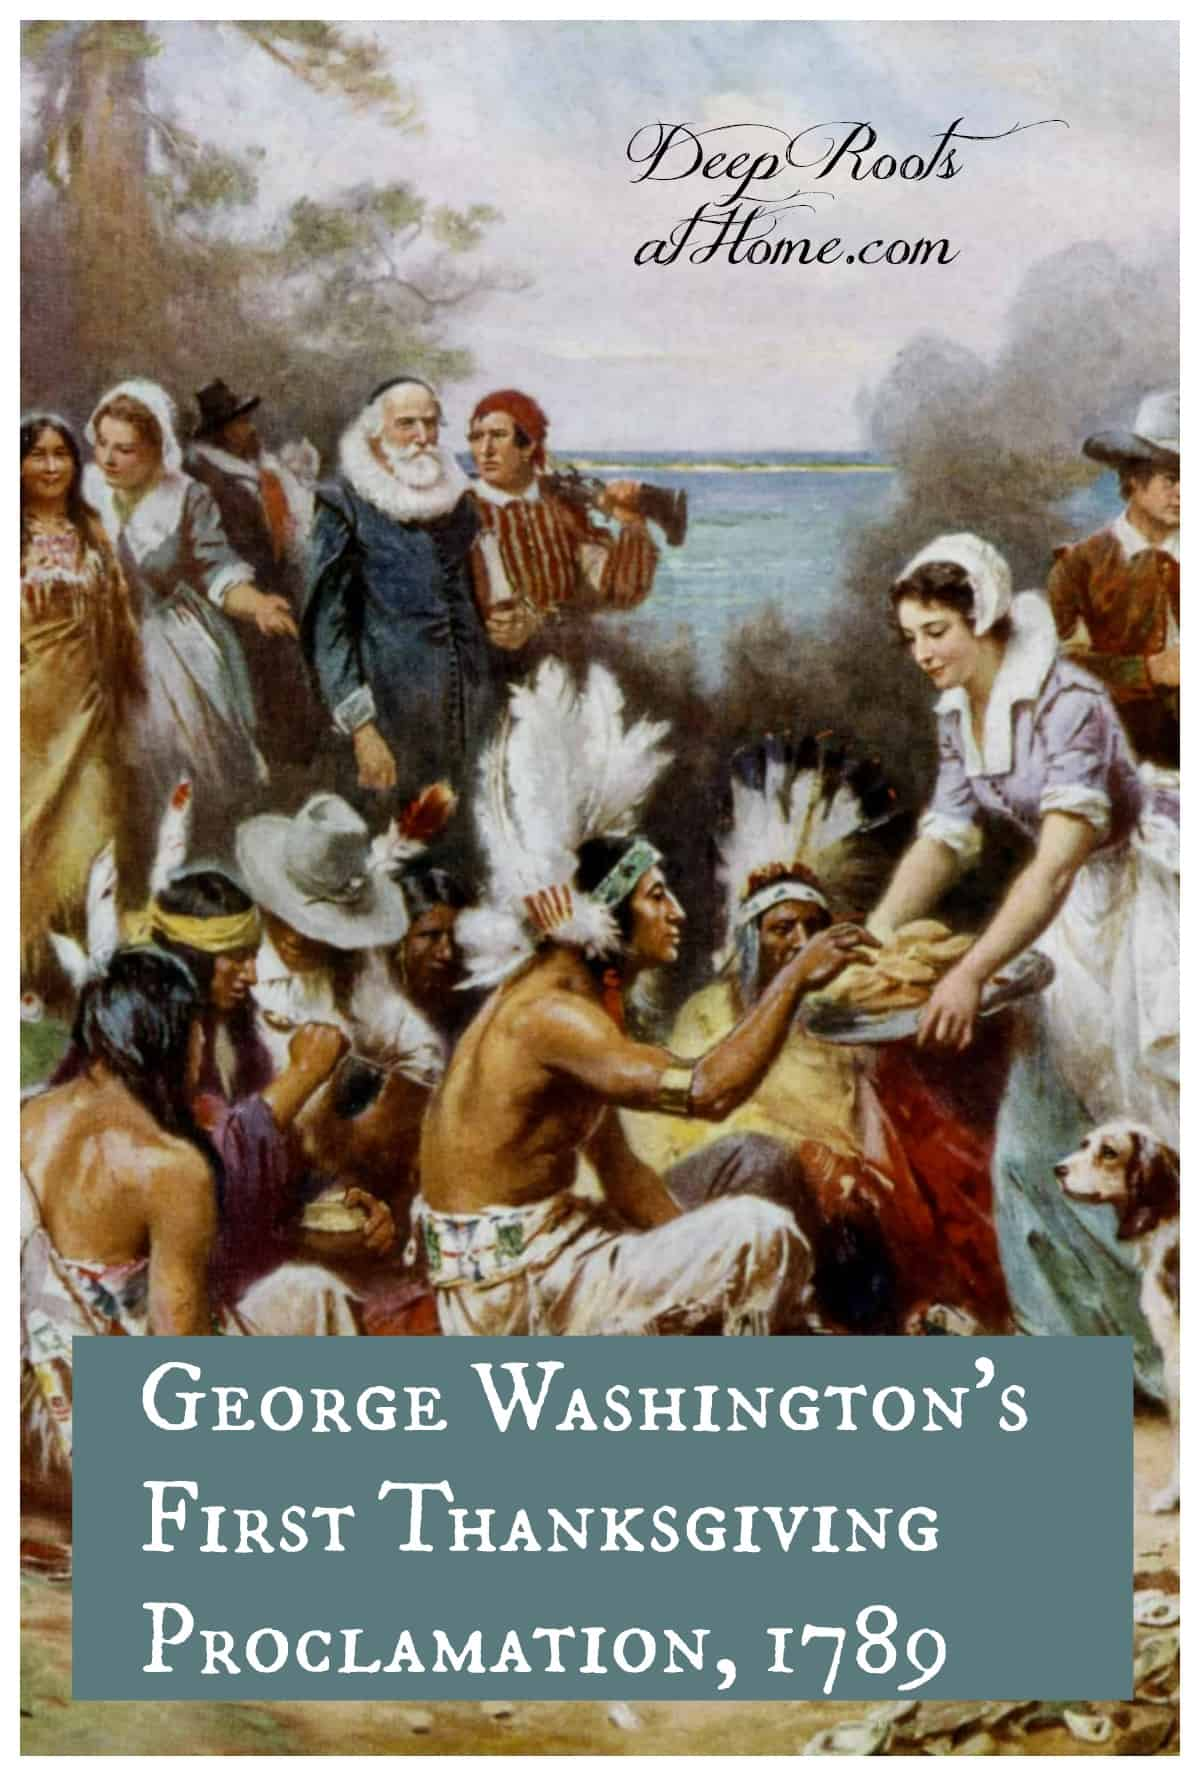 George Washington's First Thanksgiving Proclamation, 1789. American Indians and Pilgrims eating together. Pin image.